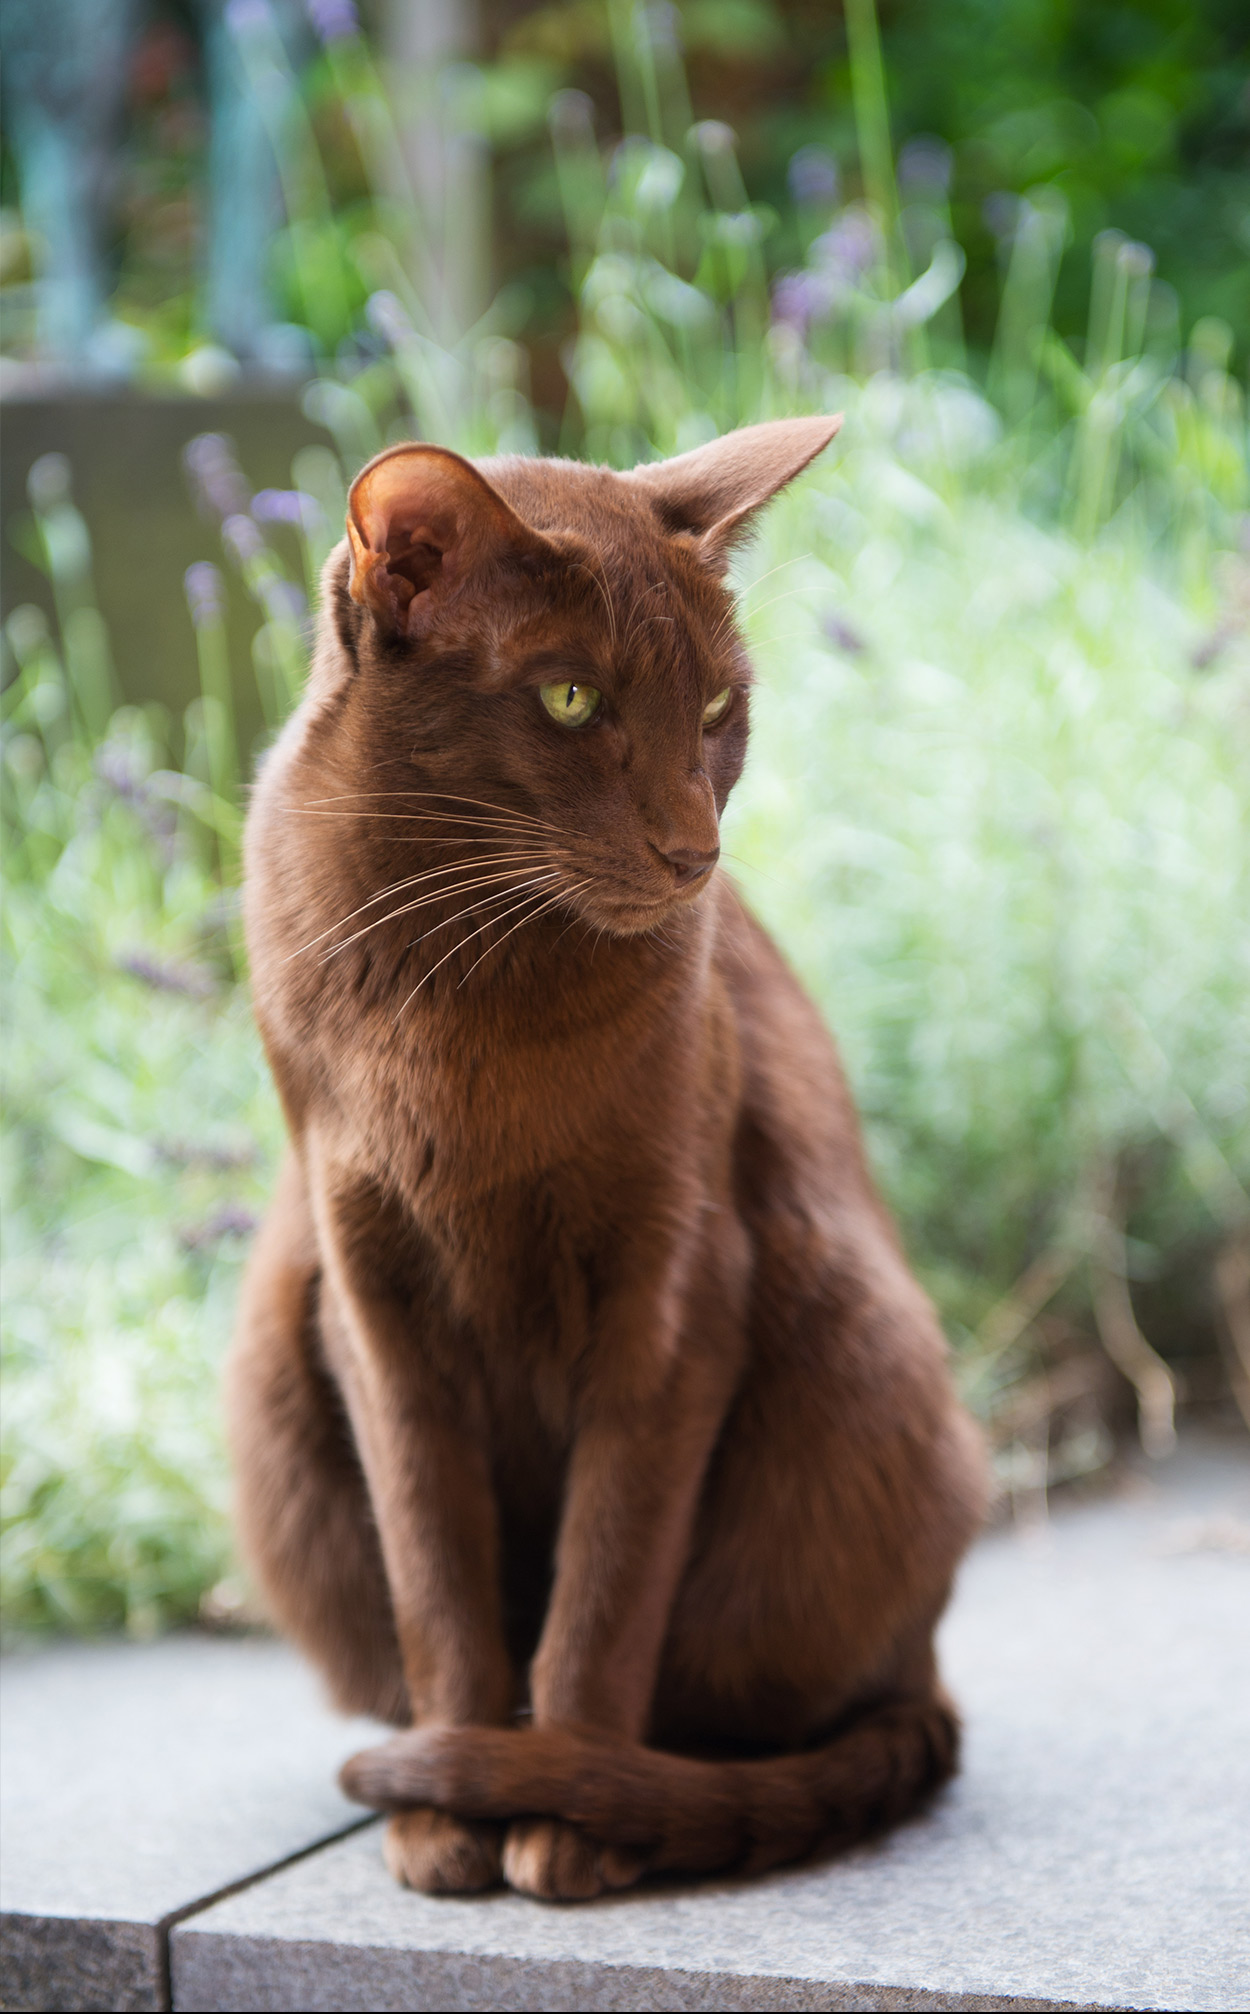 Havana Brown Cat - Your Complete Guide To The Rare Havana Breed